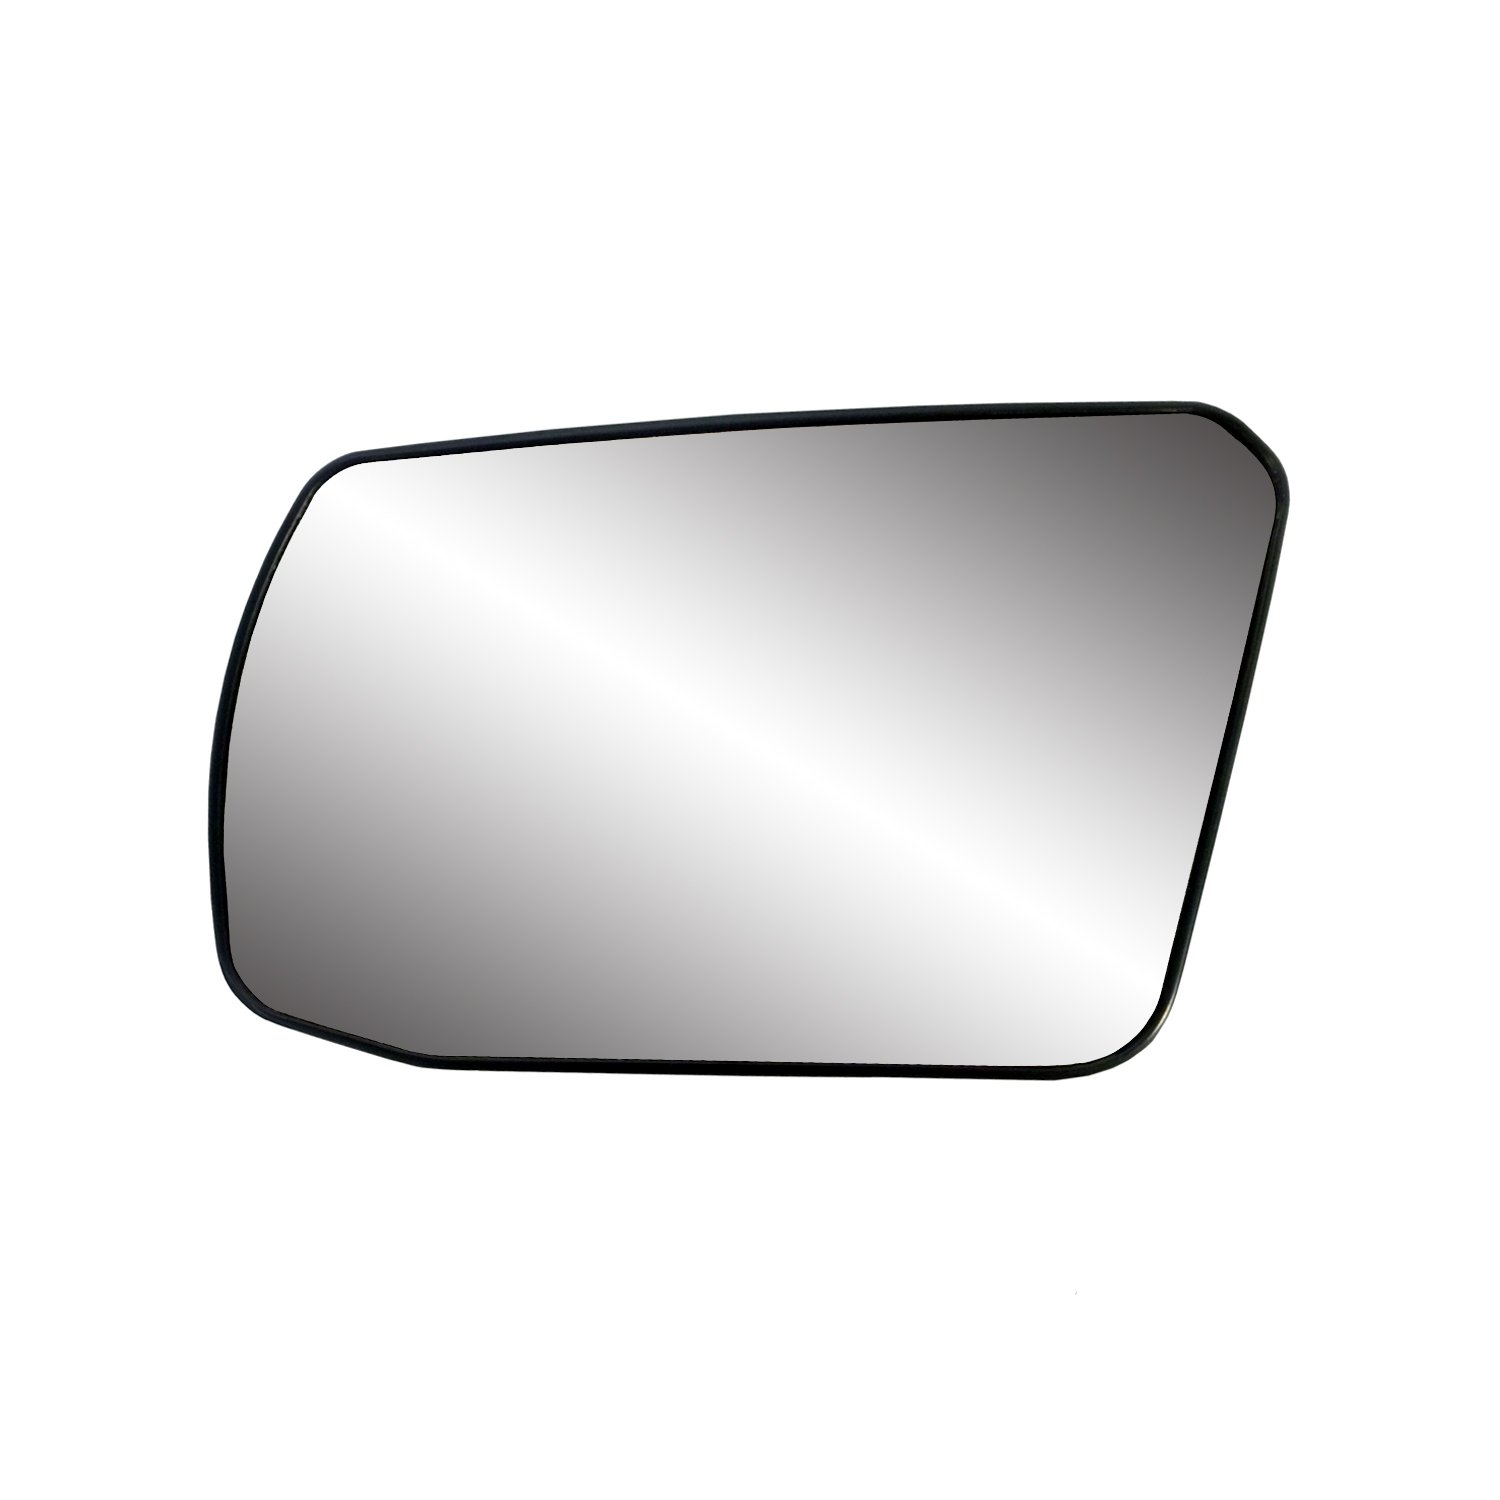 Fit System 88214 Nissan Altima 2.5L Engine Coupe//Sedan Left Side Power Non-Foldaway Replacement Mirror Glass with Backing Plate